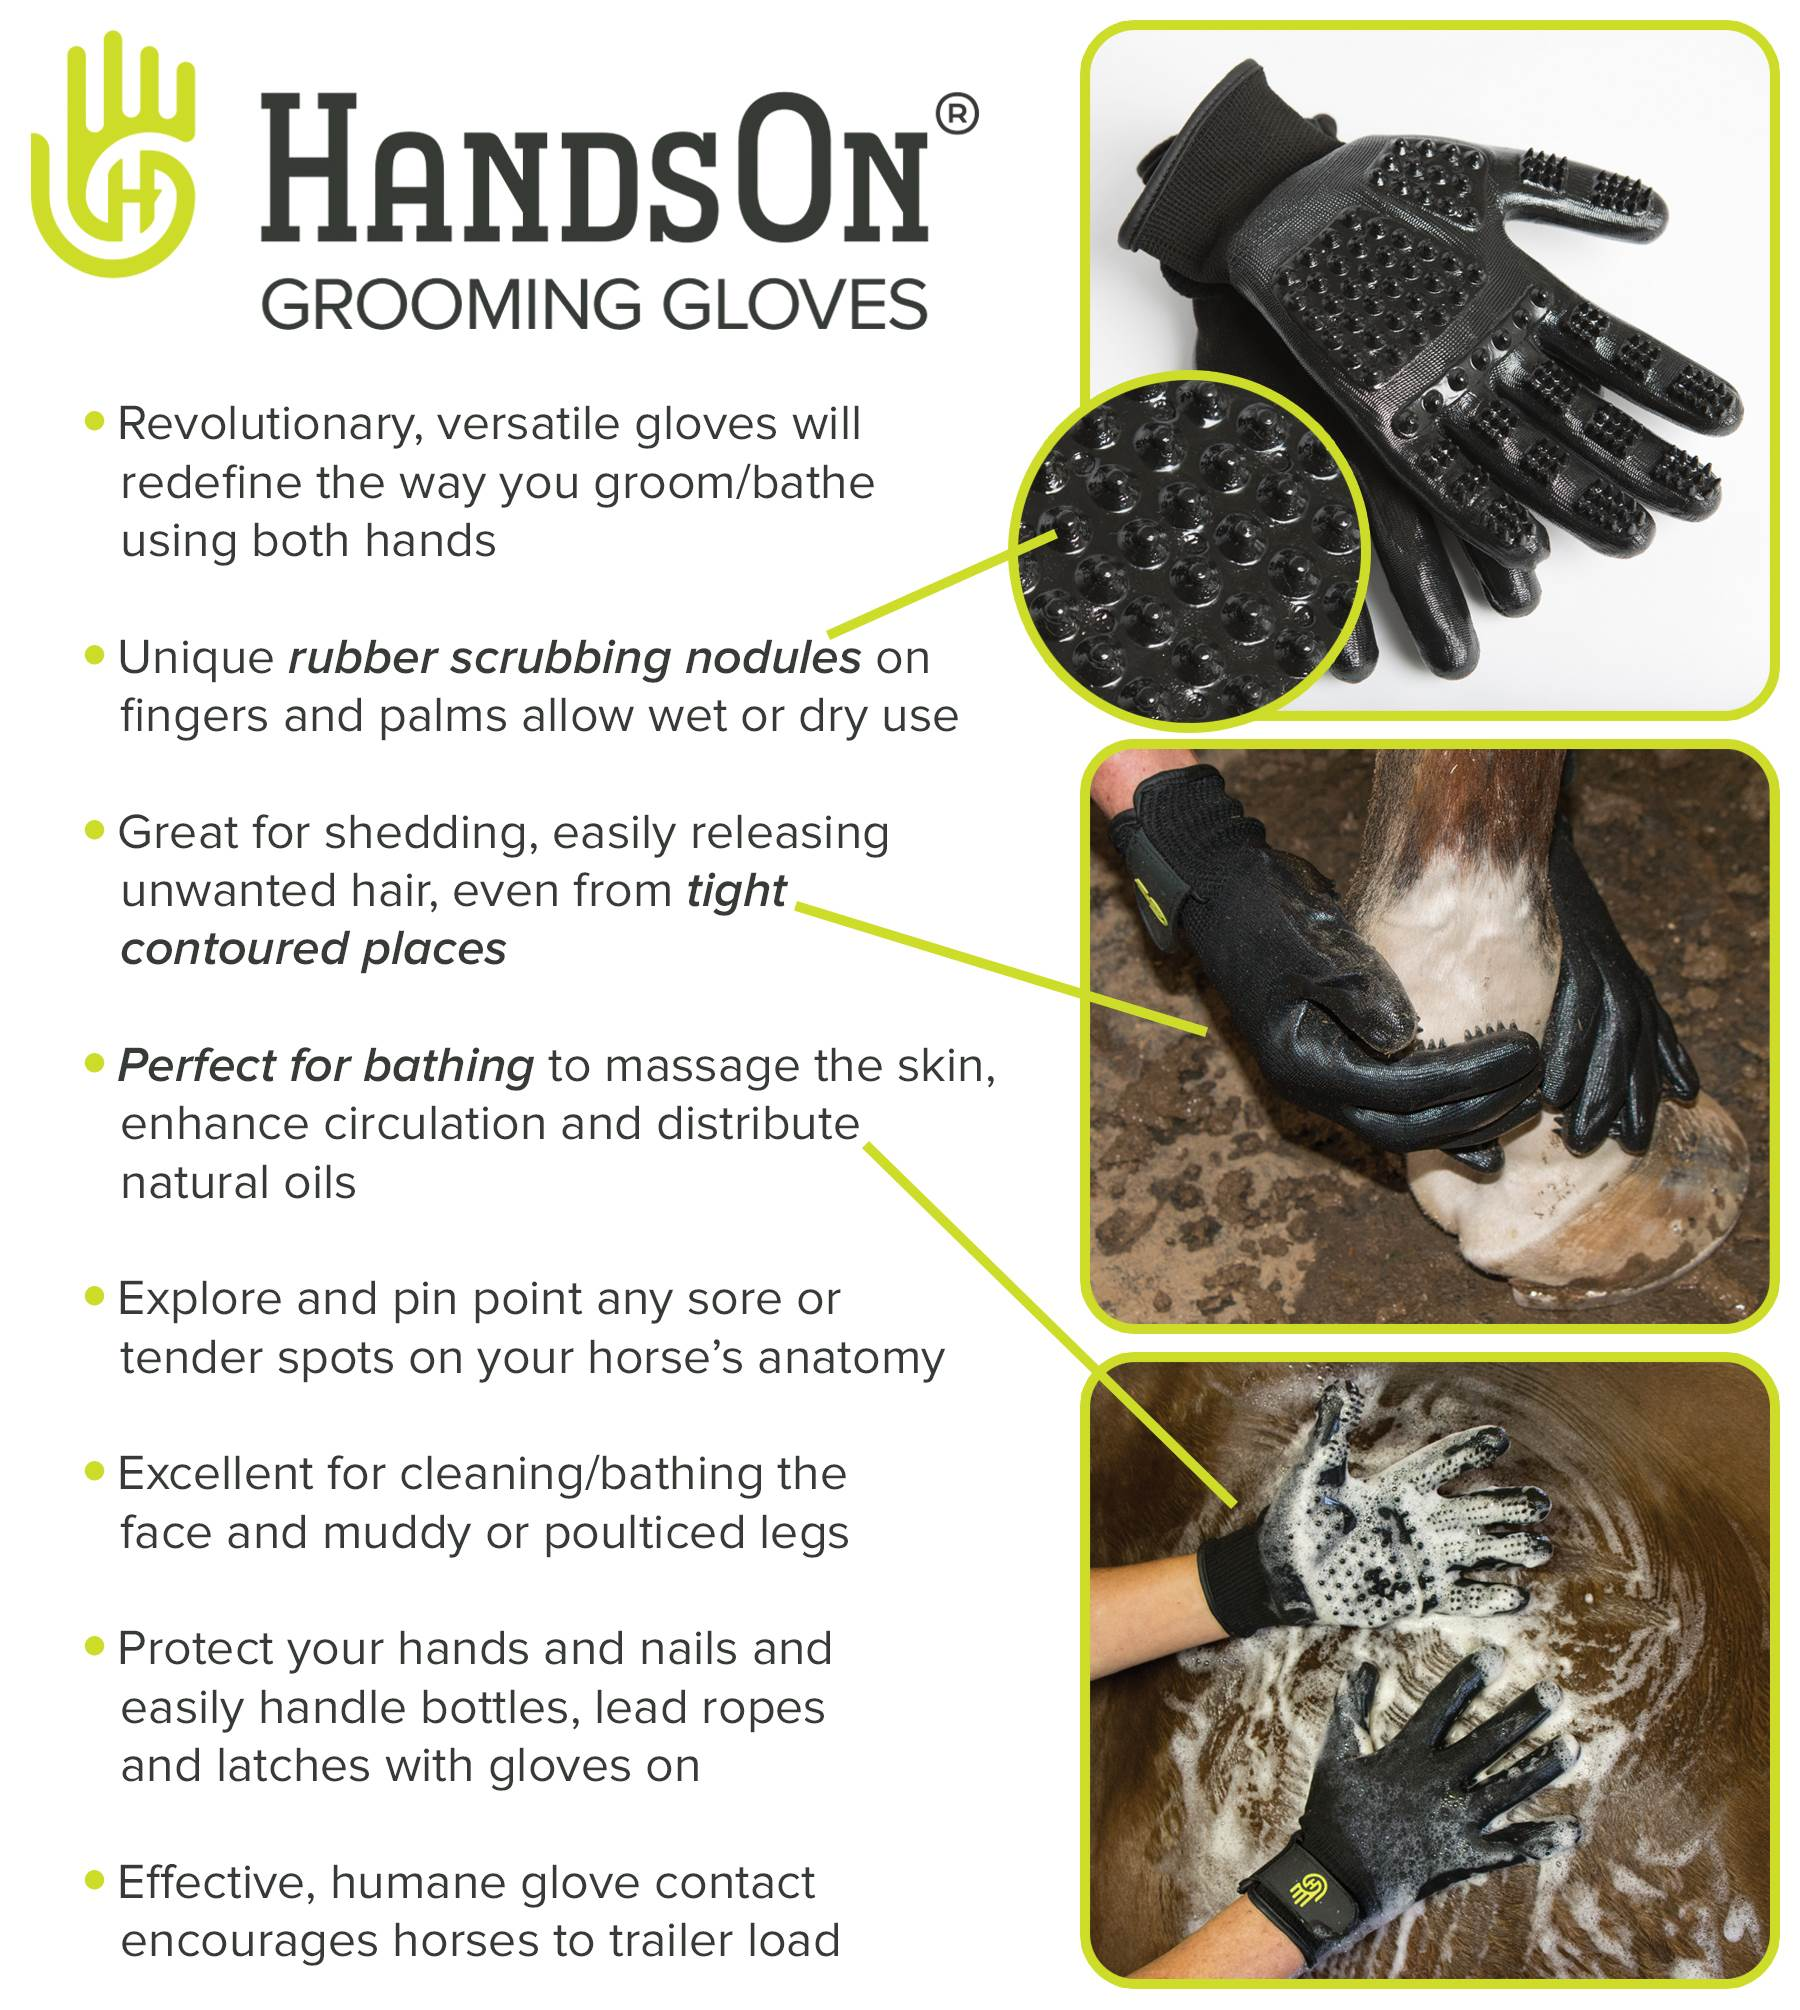 HandsOn® Grooming Gloves